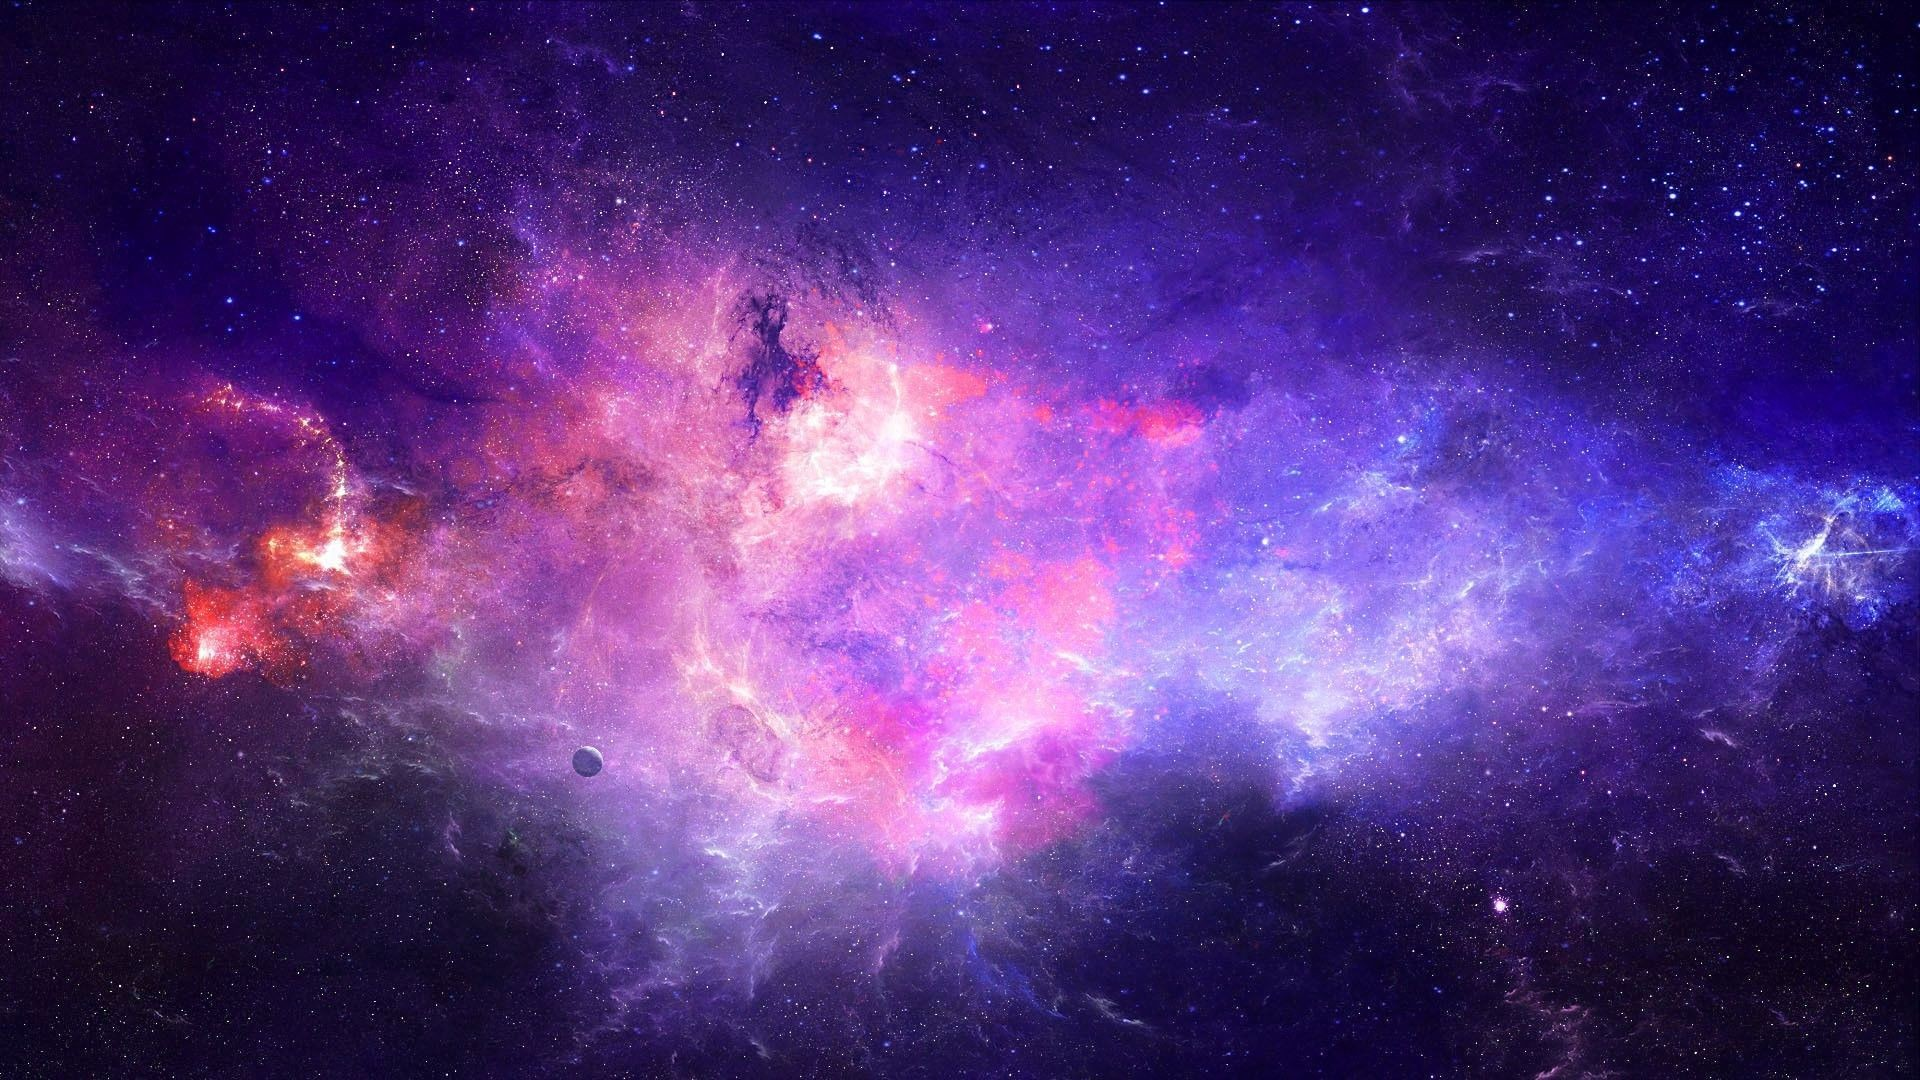 Wallpaper Galaxy Download Free Beautiful High Resolution